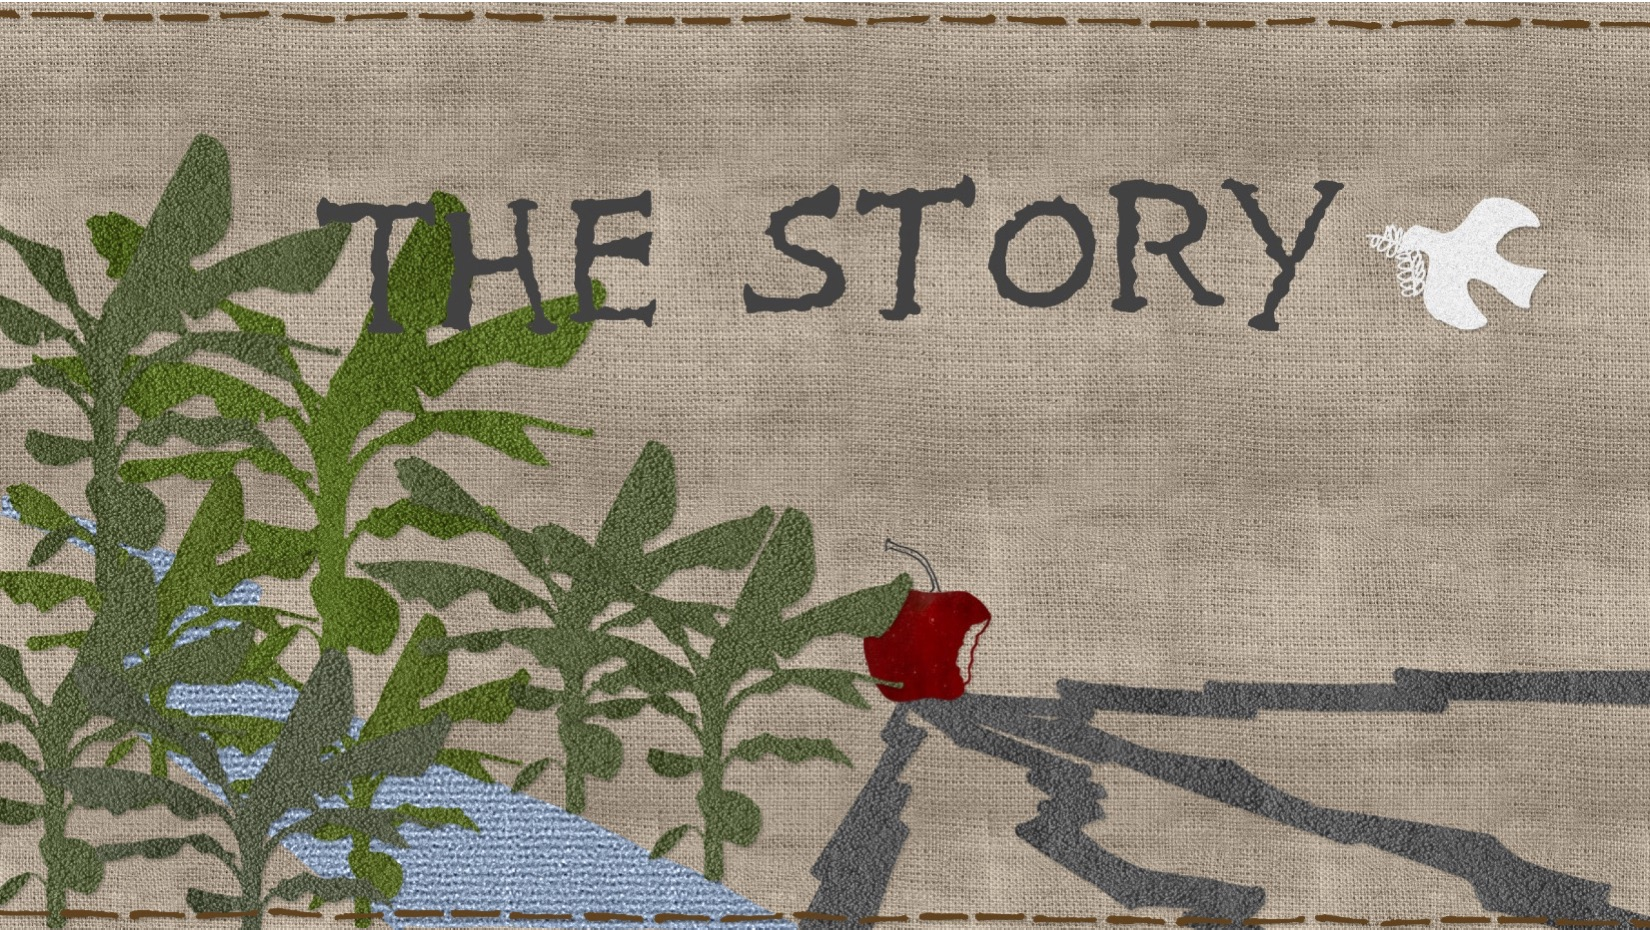 The Bible is much more than a collection of various, unrelated stories. Together, each story in the Bible make up a larger story, The Story of God